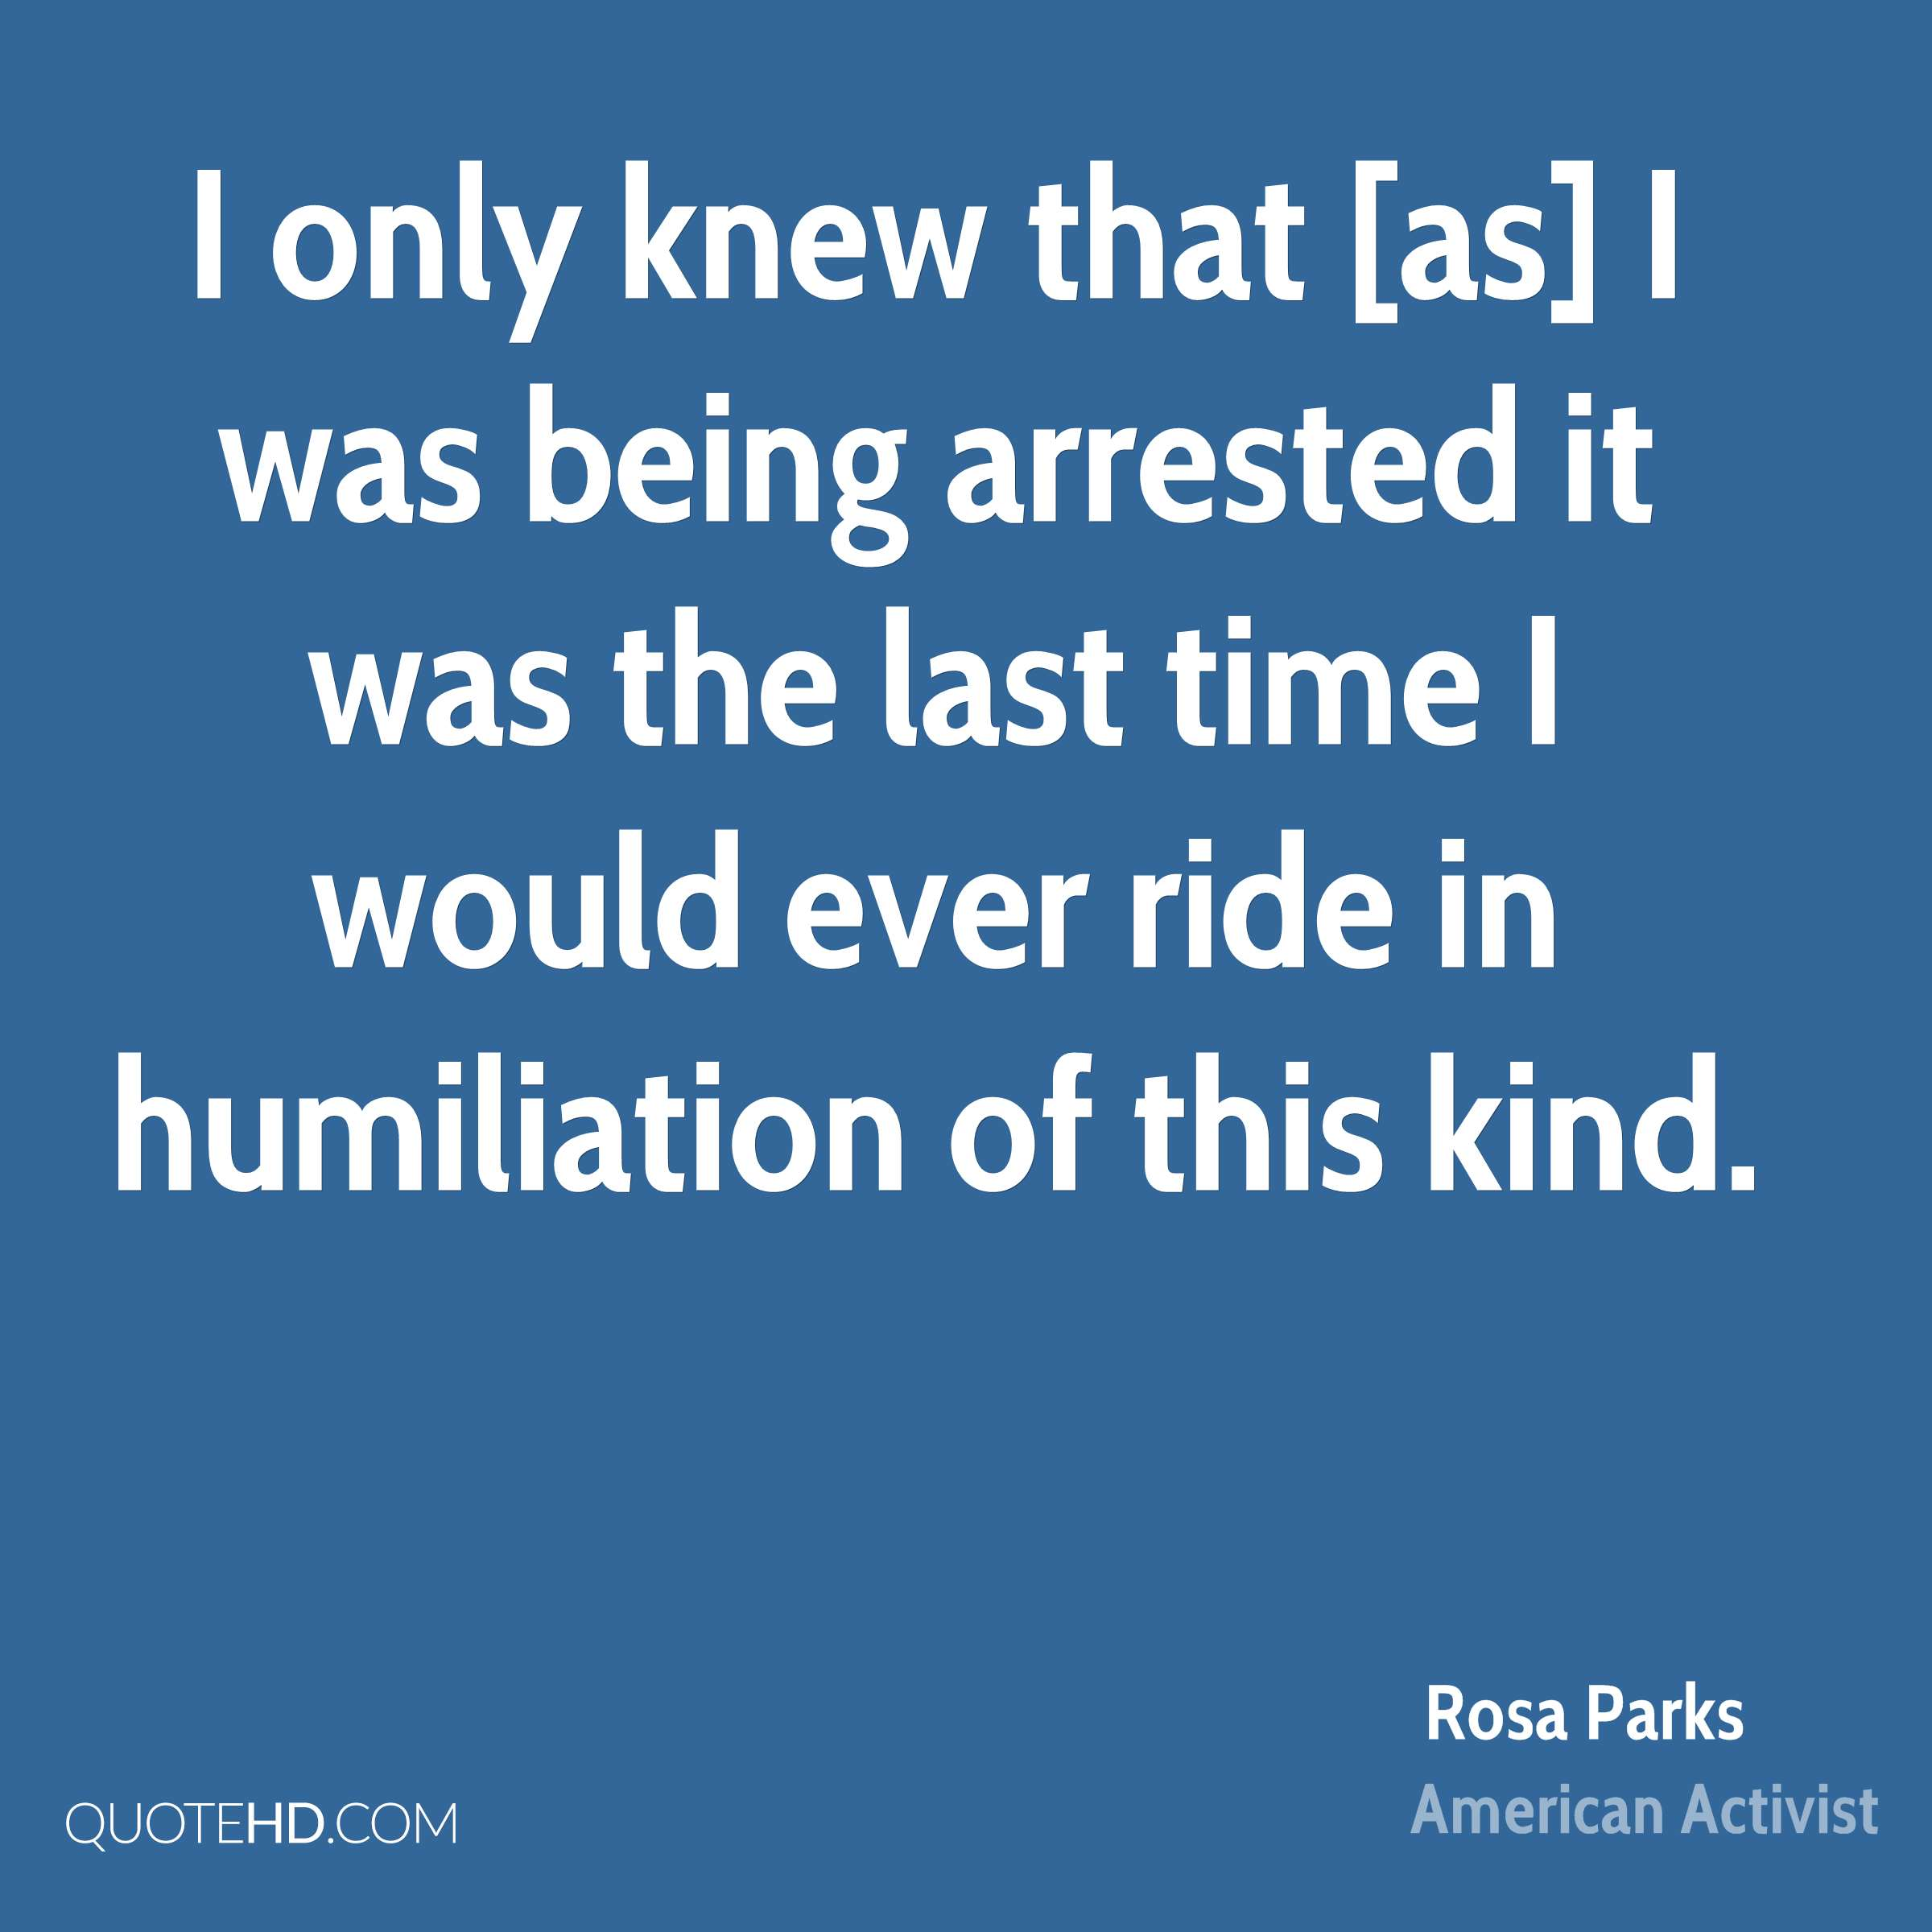 I only knew that [as] I was being arrested it was the last time I would ever ride in humiliation of this kind.